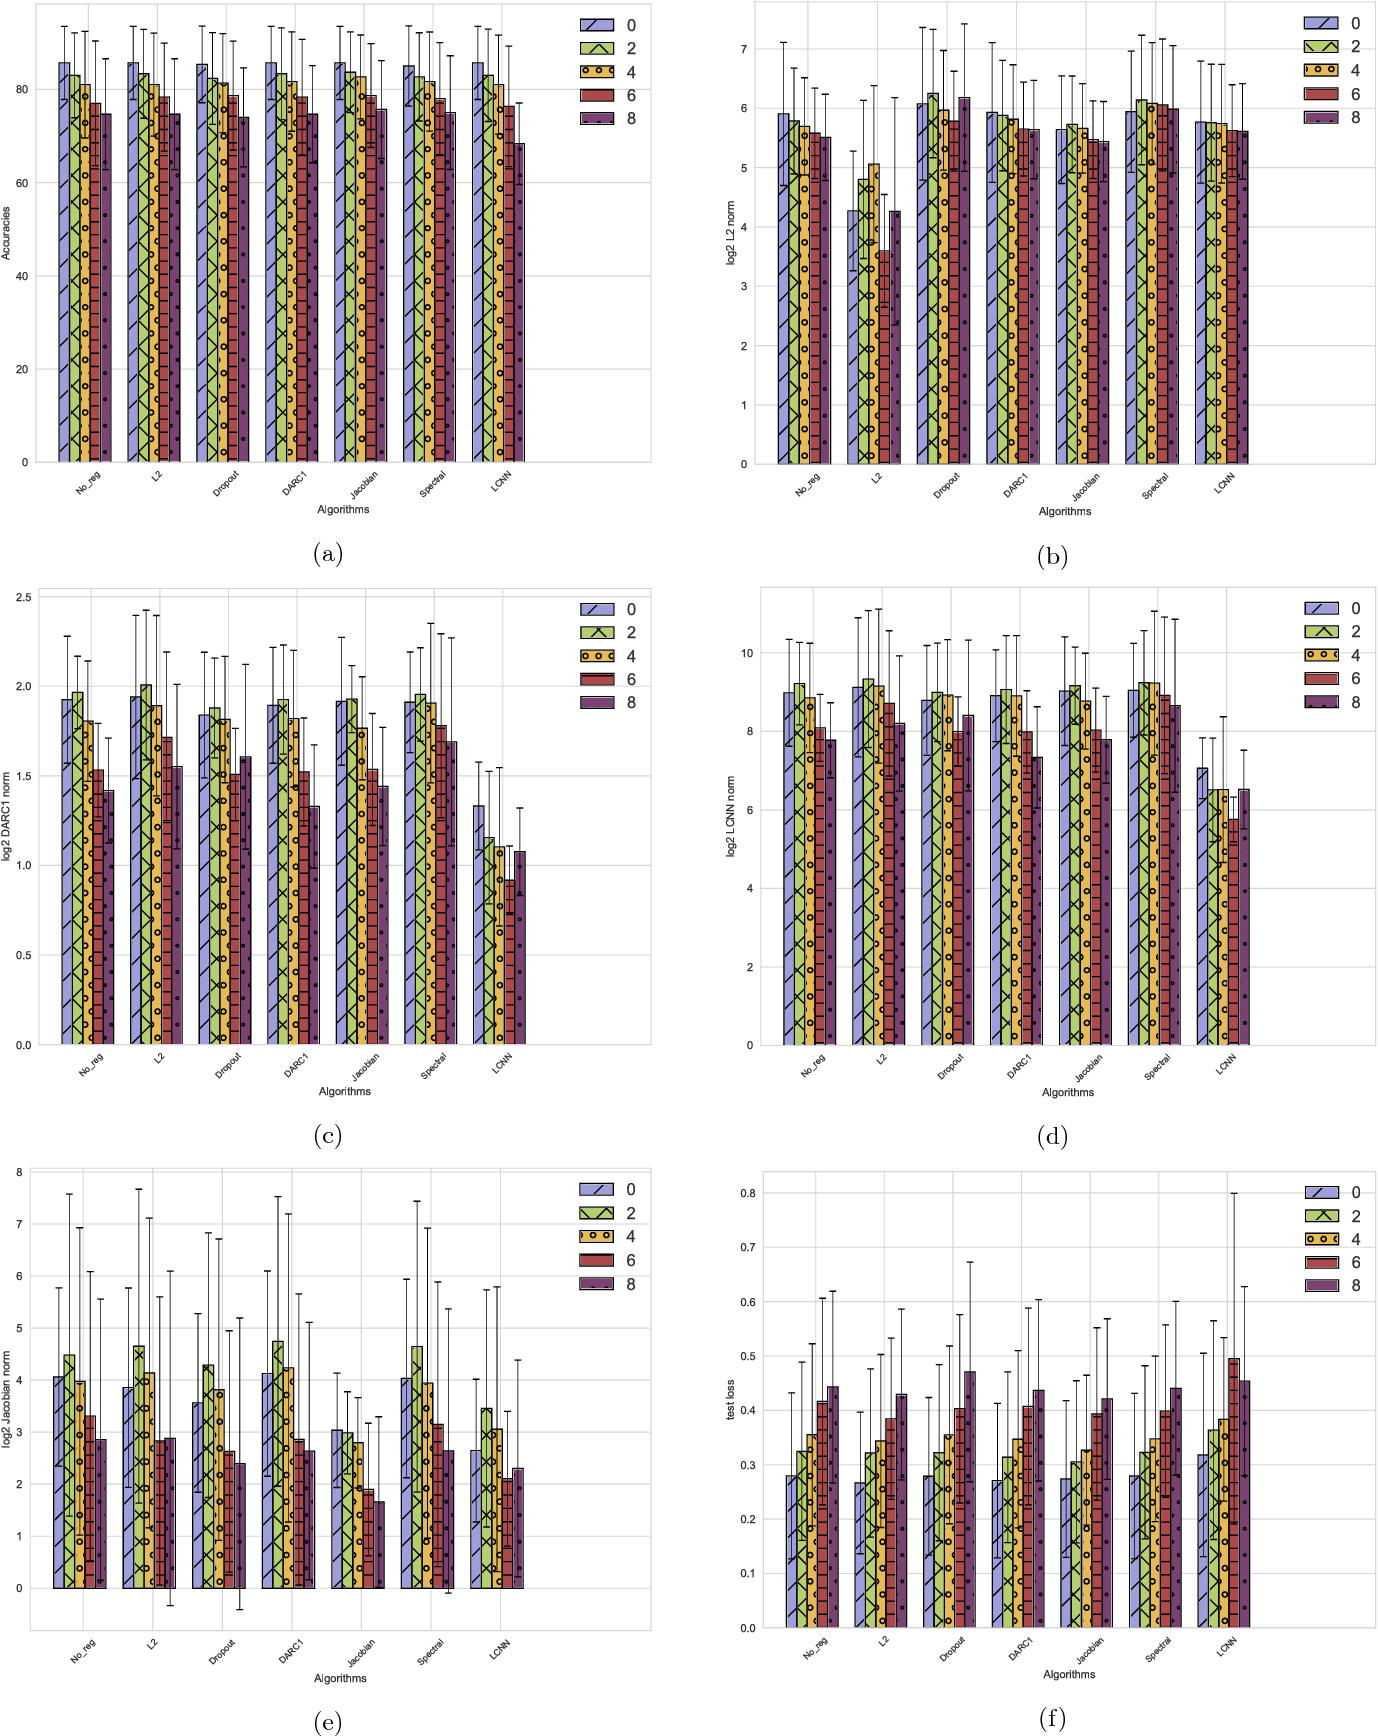 Figure 2 for Effect of Various Regularizers on Model Complexities of Neural Networks in Presence of Input Noise